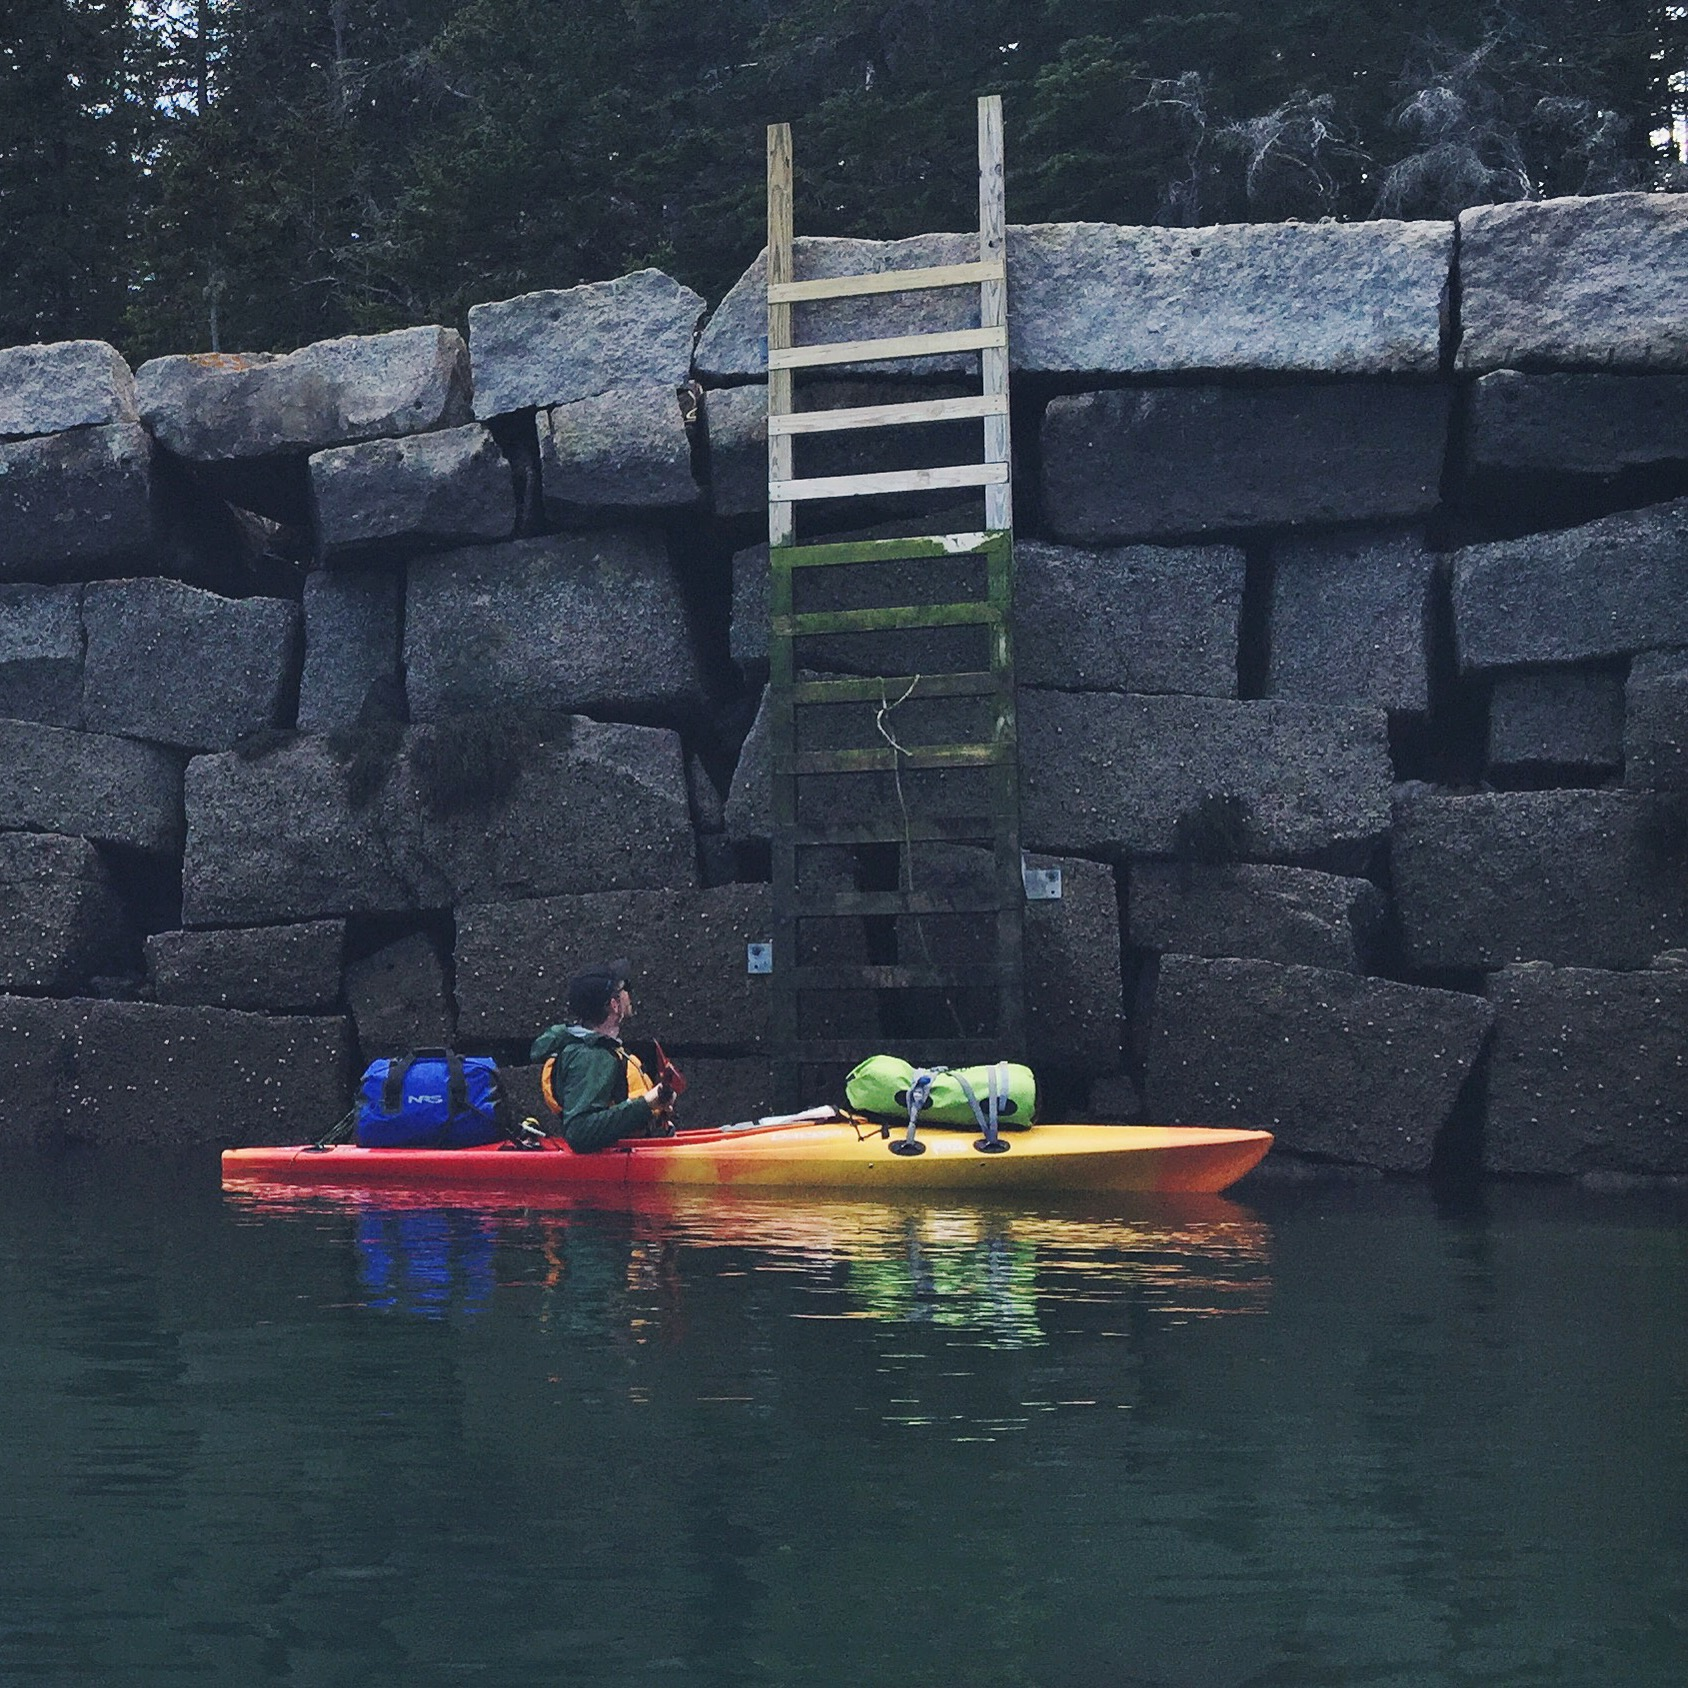 The ladders from the cove of Green Island allow boaters easy access to the islands' interior.